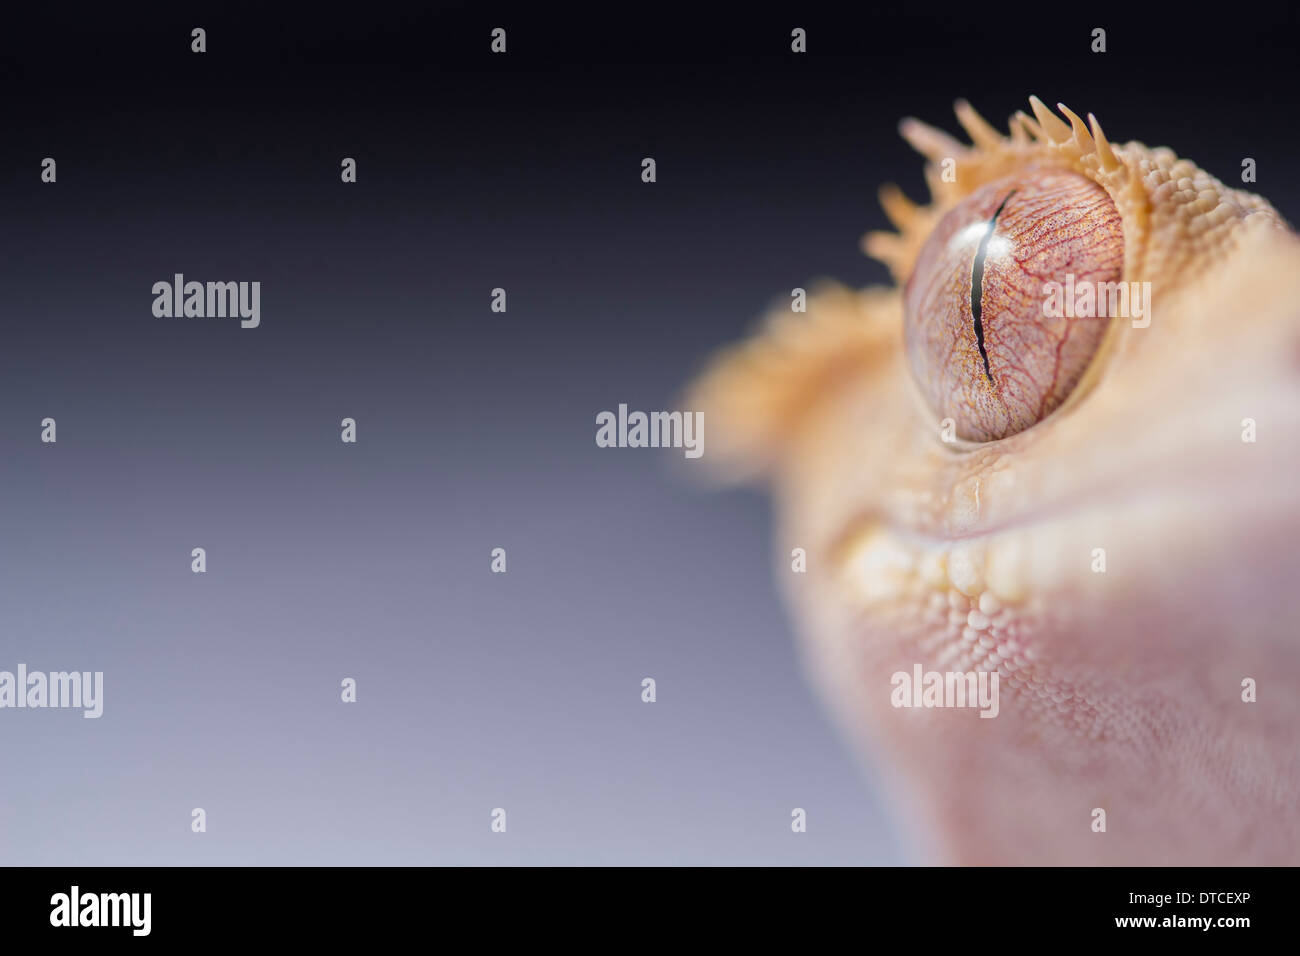 Crested Gecko on a plain two tone background with a short DOF aimed at a section of the eye - Stock Image